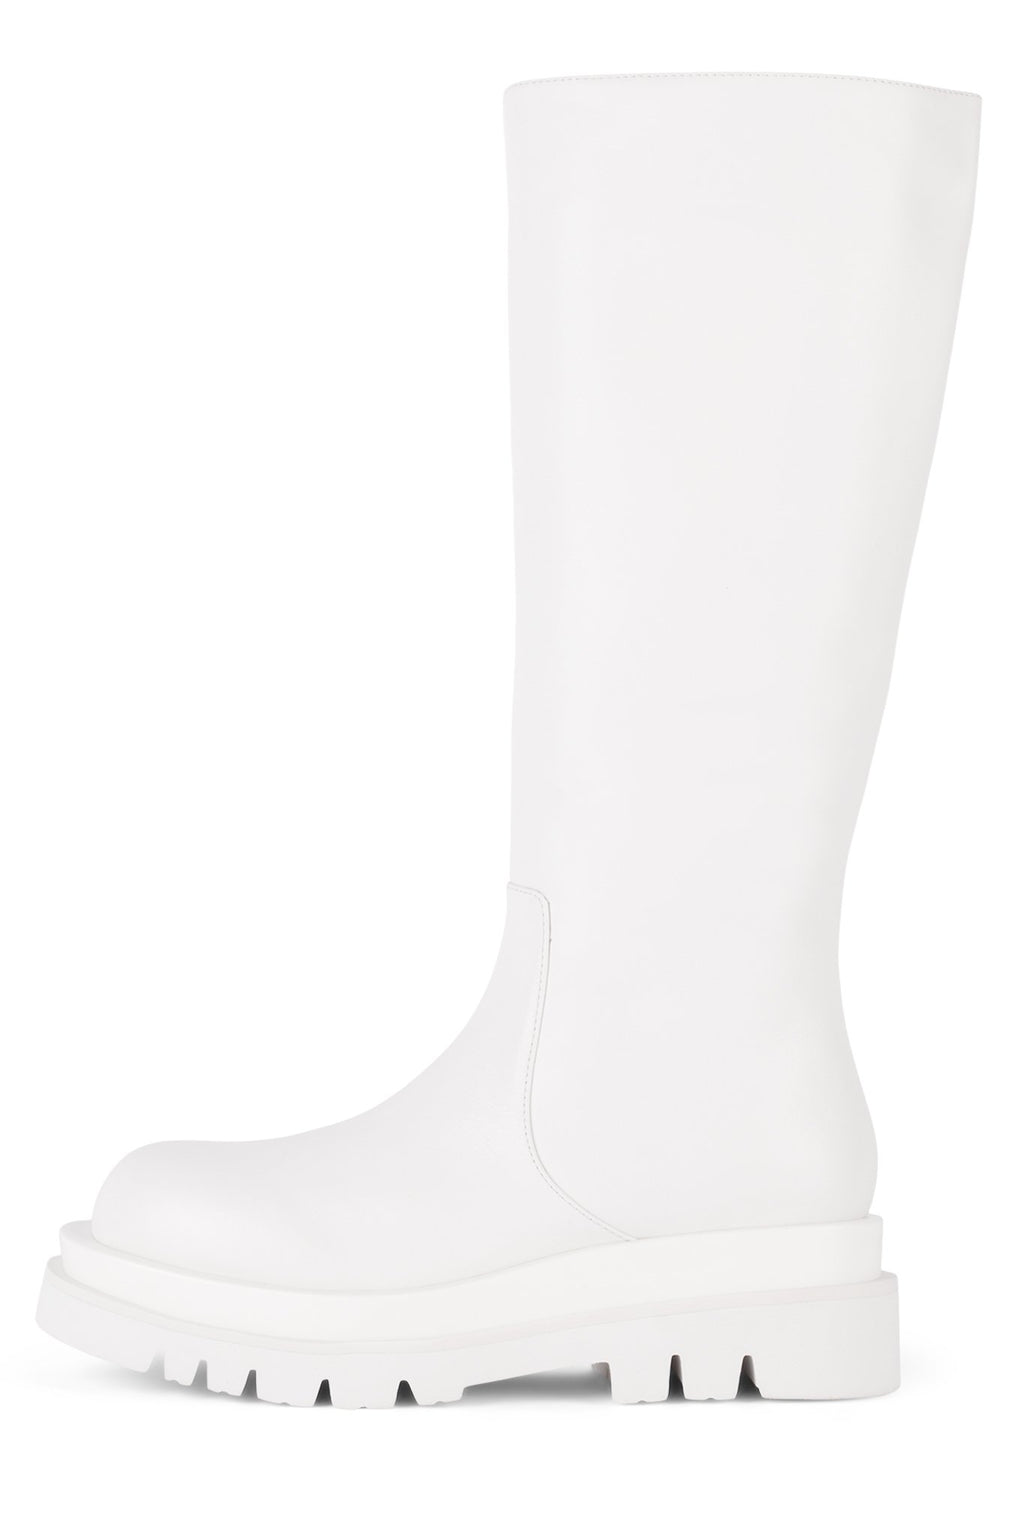 TANKED-KH Knee-High Boot Jeffrey Campbell White 6